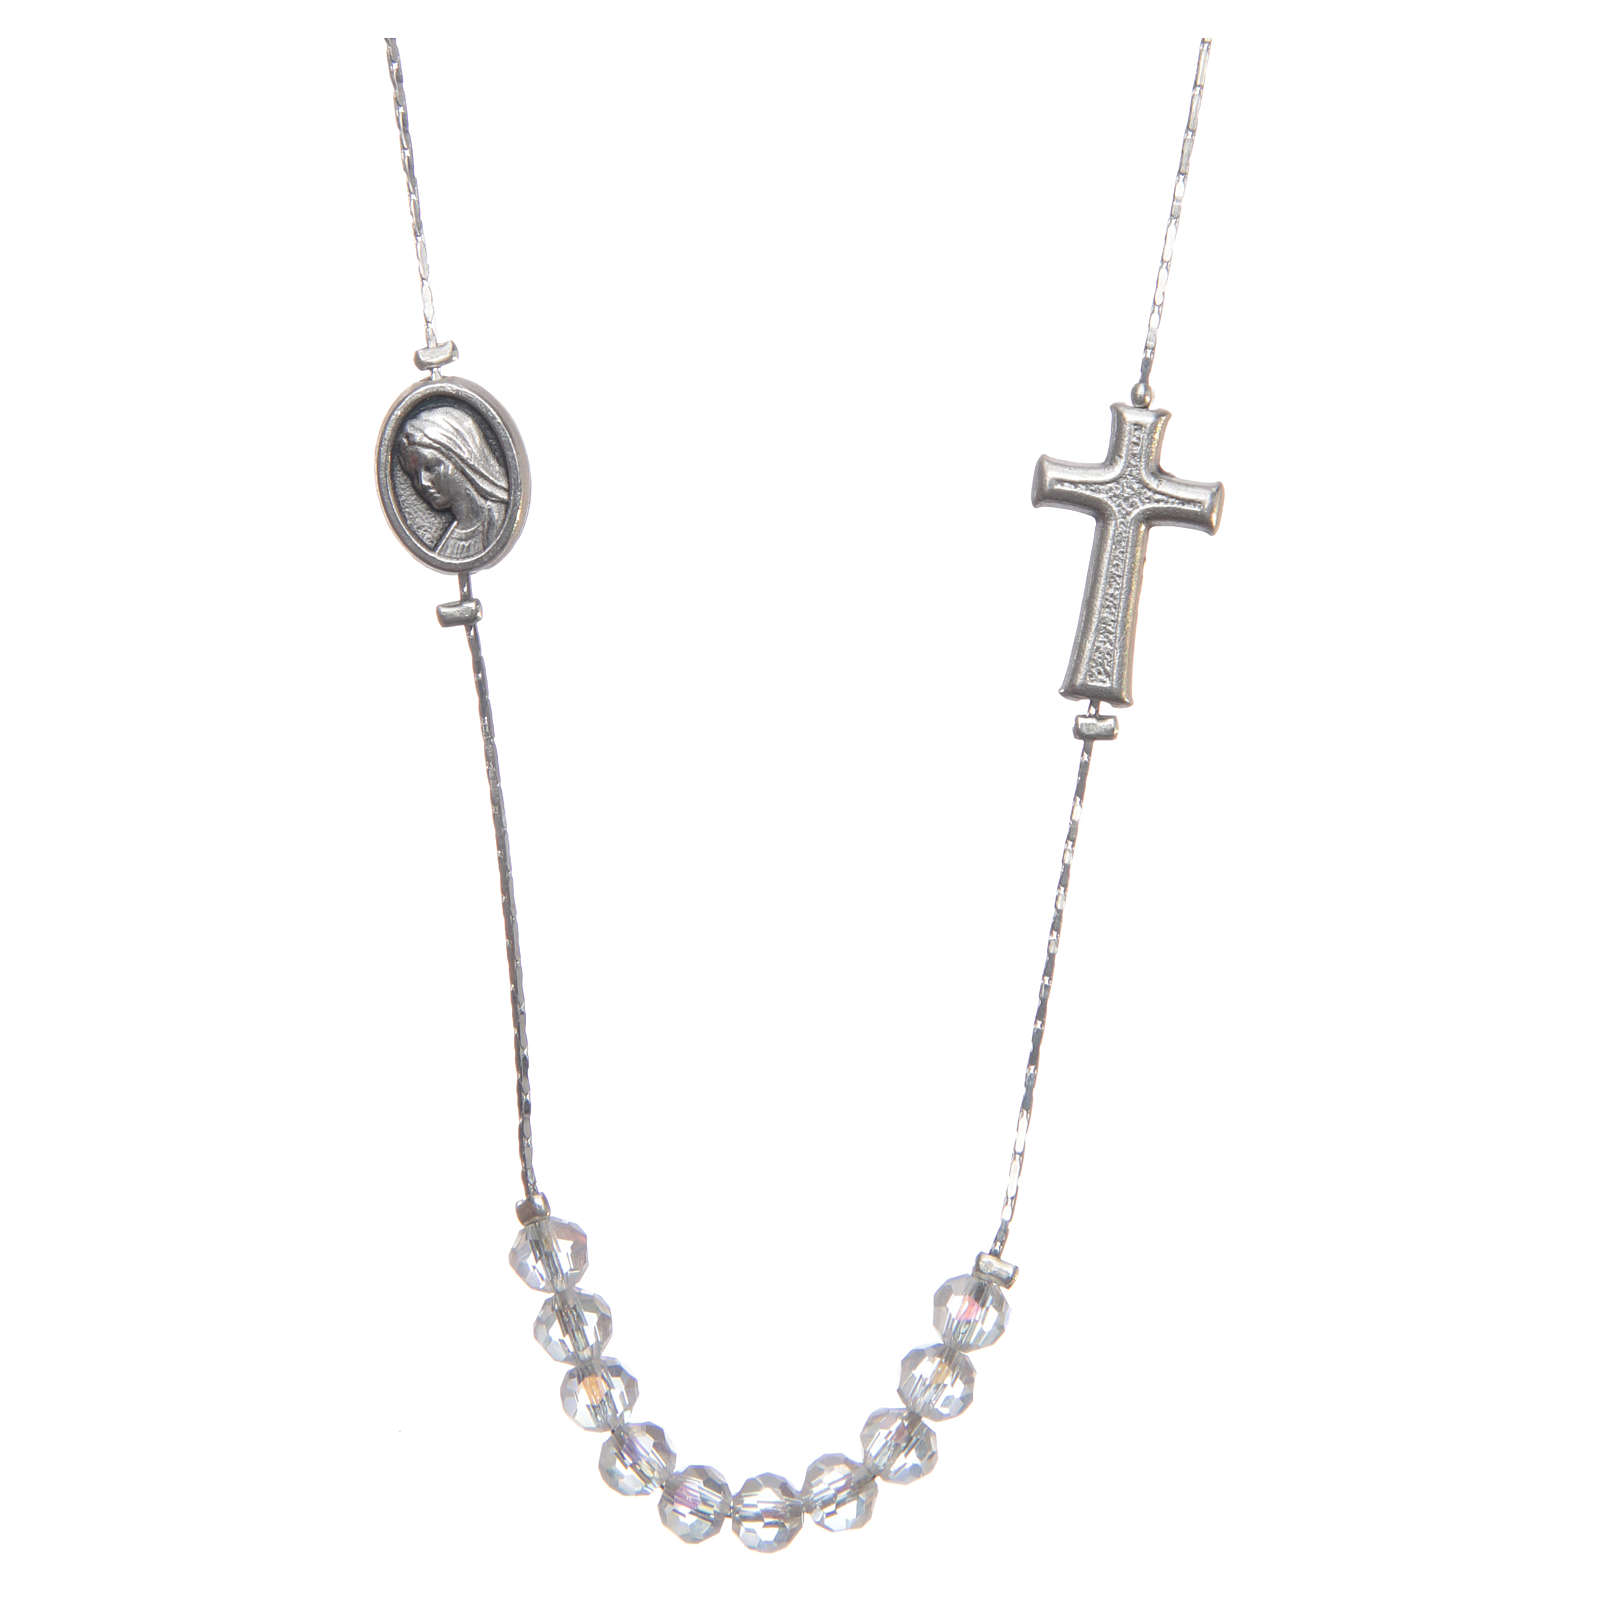 Medjugorje necklace in steel and crystal with clasp 4